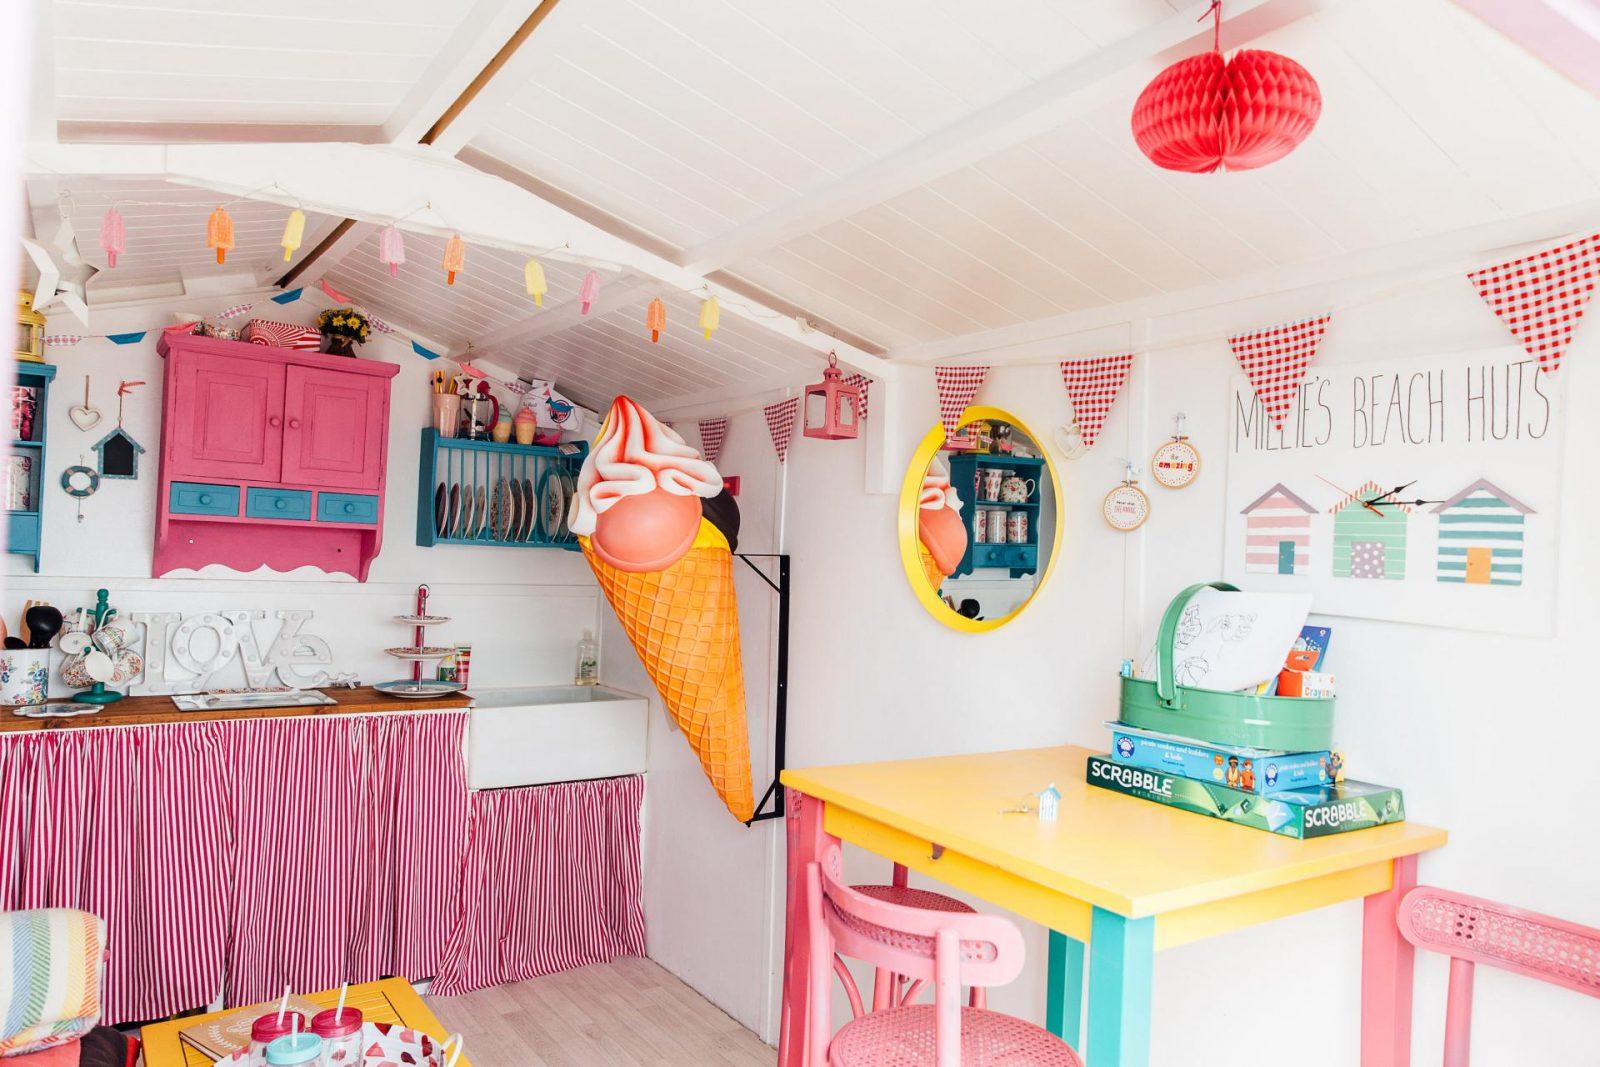 Inspire Me - Vicky, Millie's Beach Huts